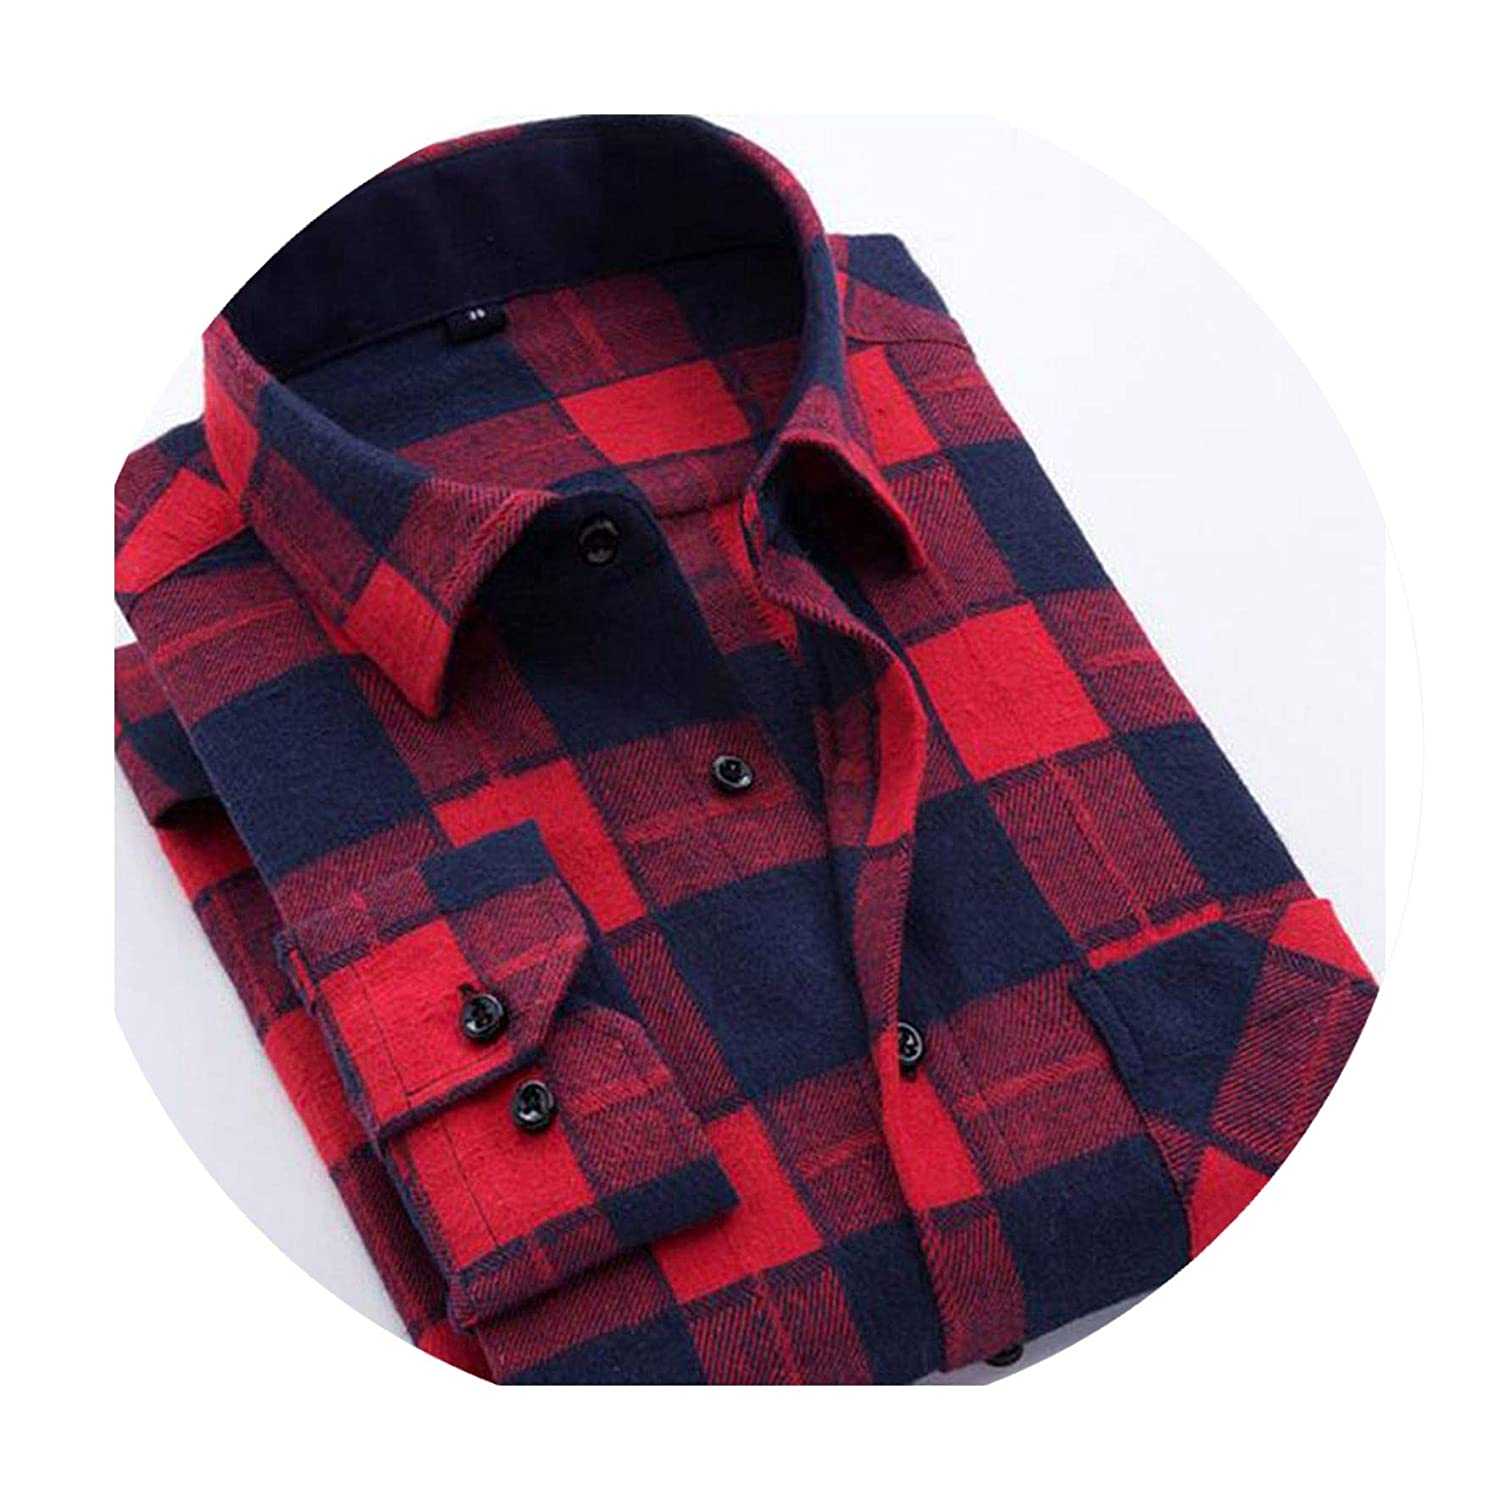 Classic Men Fashion Long Sleeve Plaid Grind Shirts Camisa Turn-Down Collar Breathable Cotton Shirts Tops